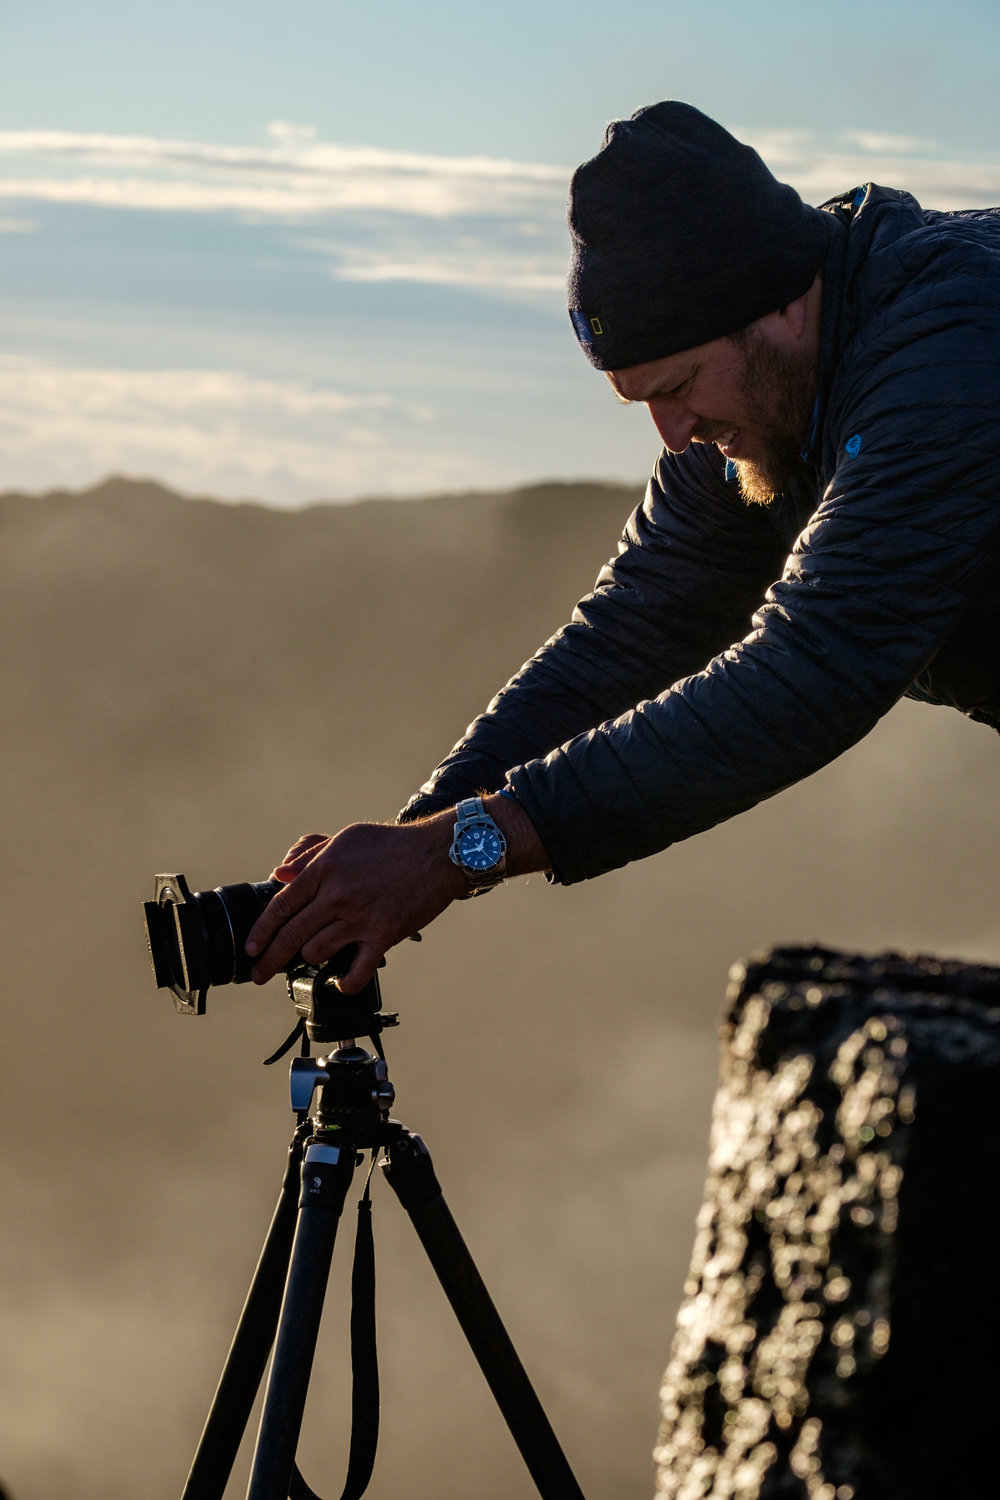 Jonathan futzing with his Fujifilm X-T1 during sunrise atop the crater.